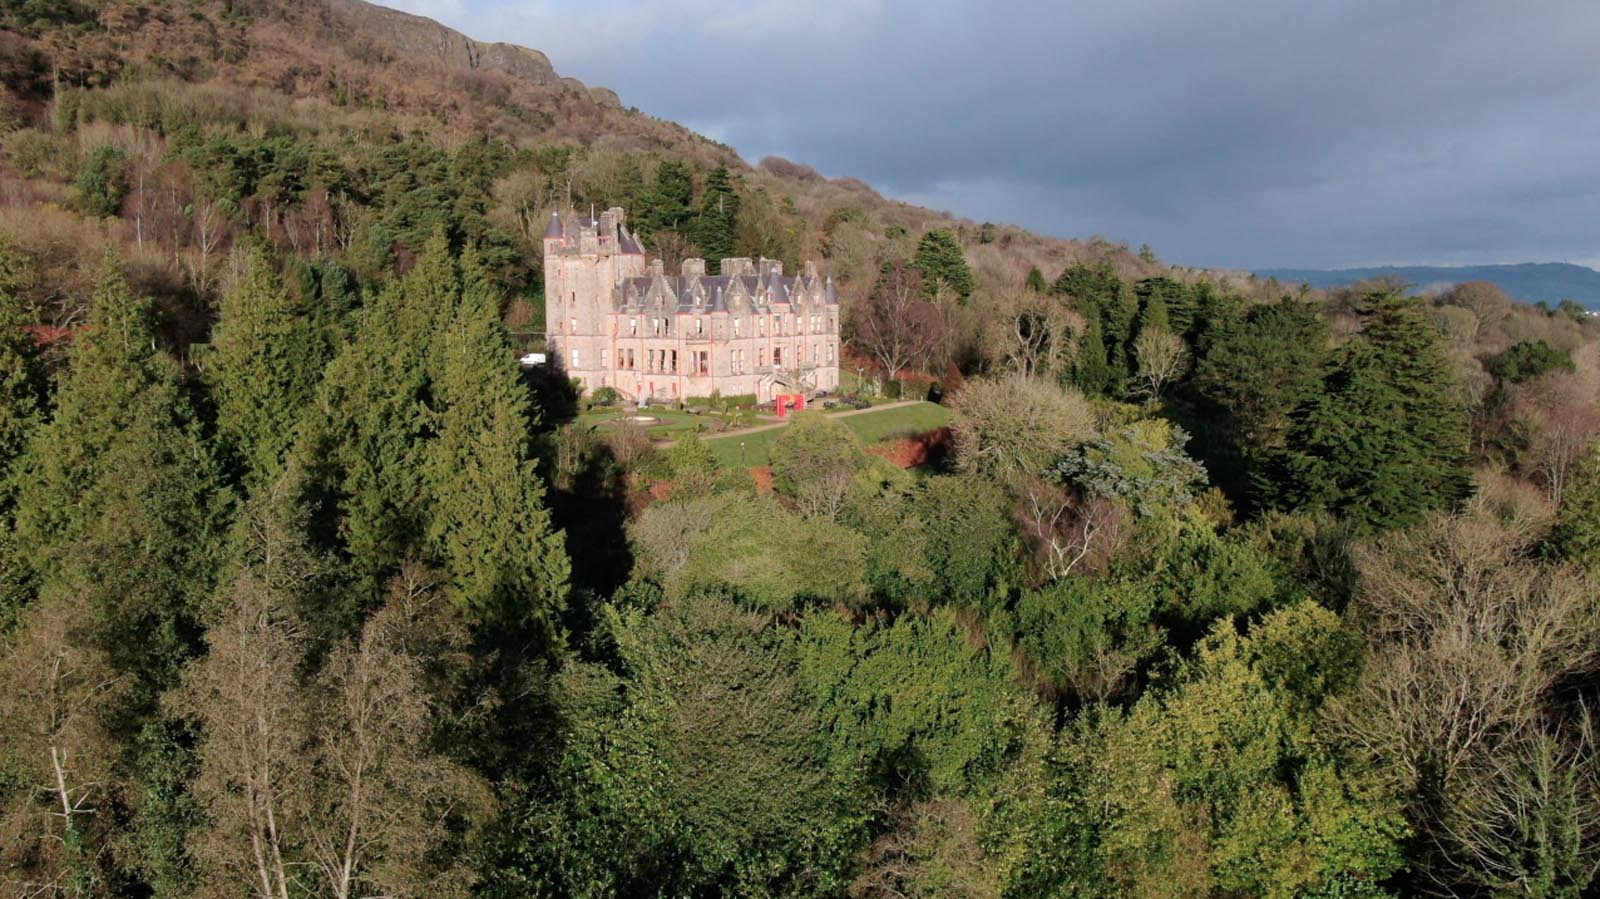 Aerial drone photography and video production services Dublin and Ireland portfolio - screenshot 1 of Belfast Castle 2 video